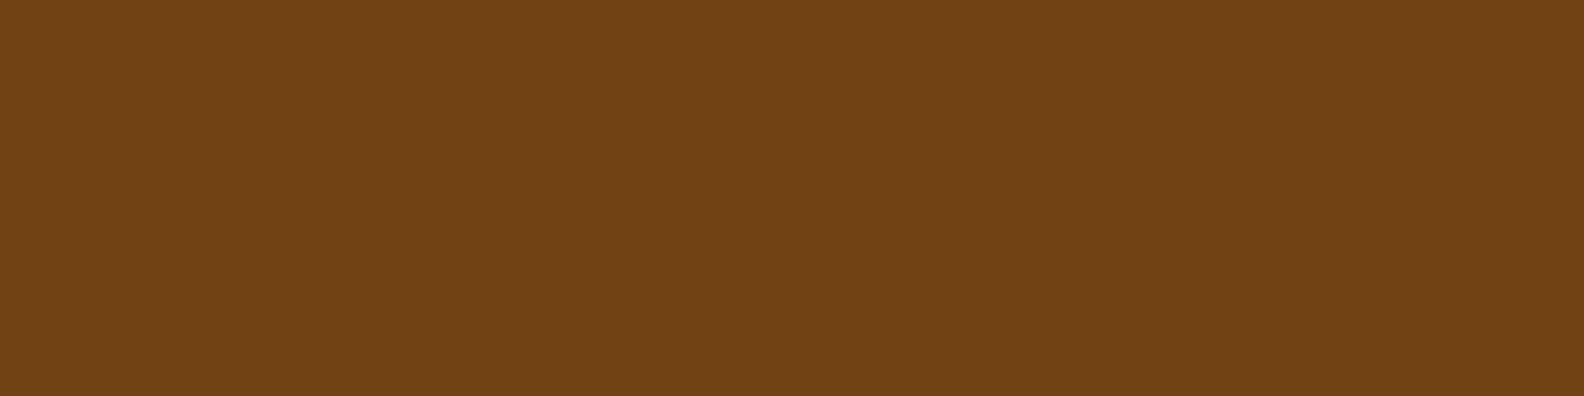 1584x396 Sepia Solid Color Background